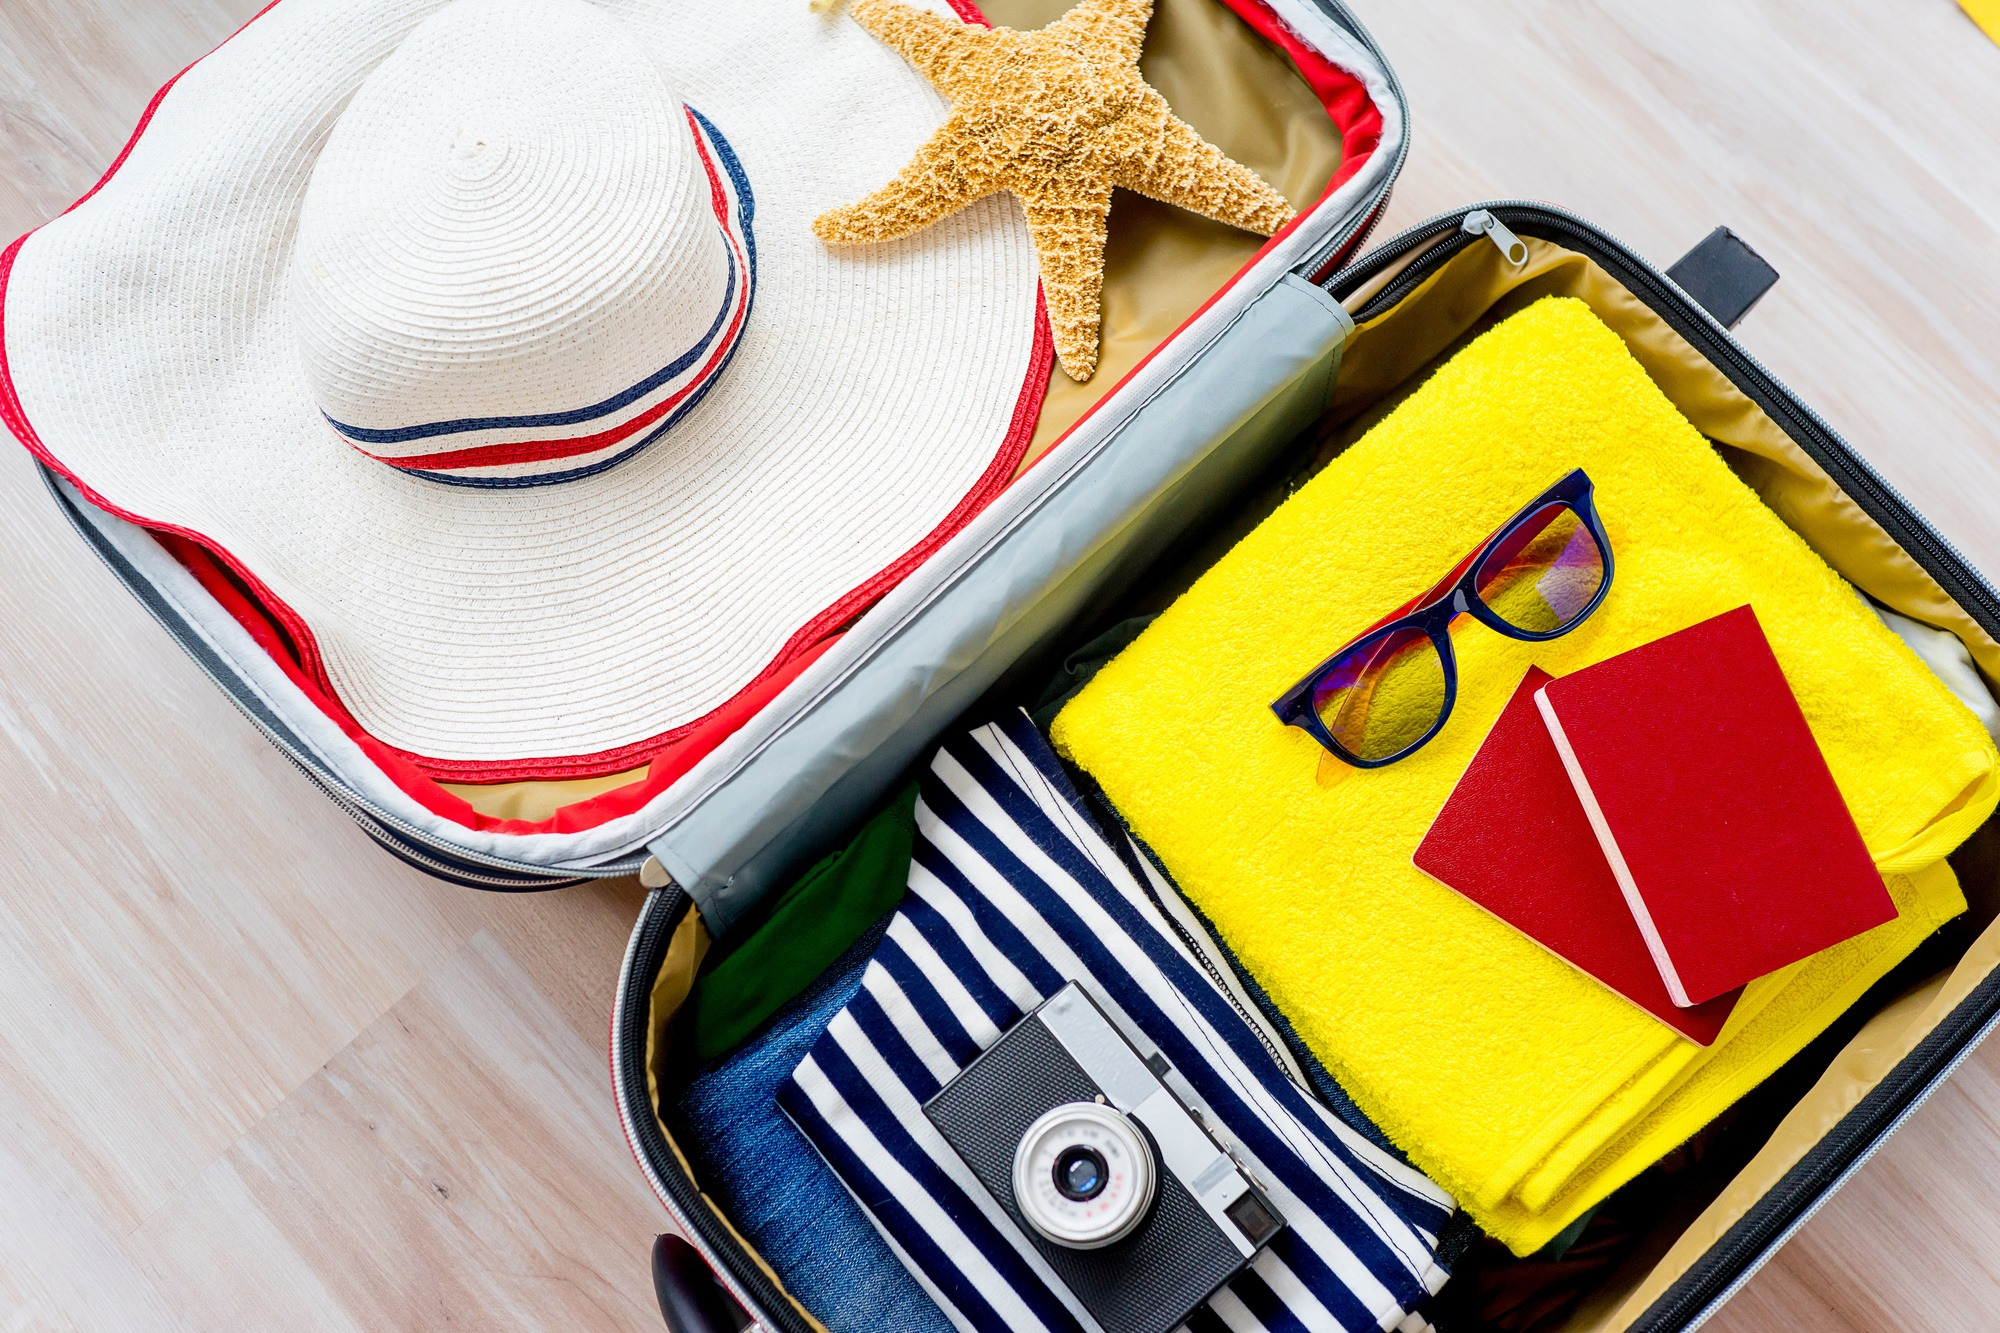 5 Tips to Help Choose Your Travel Clothing Wisely